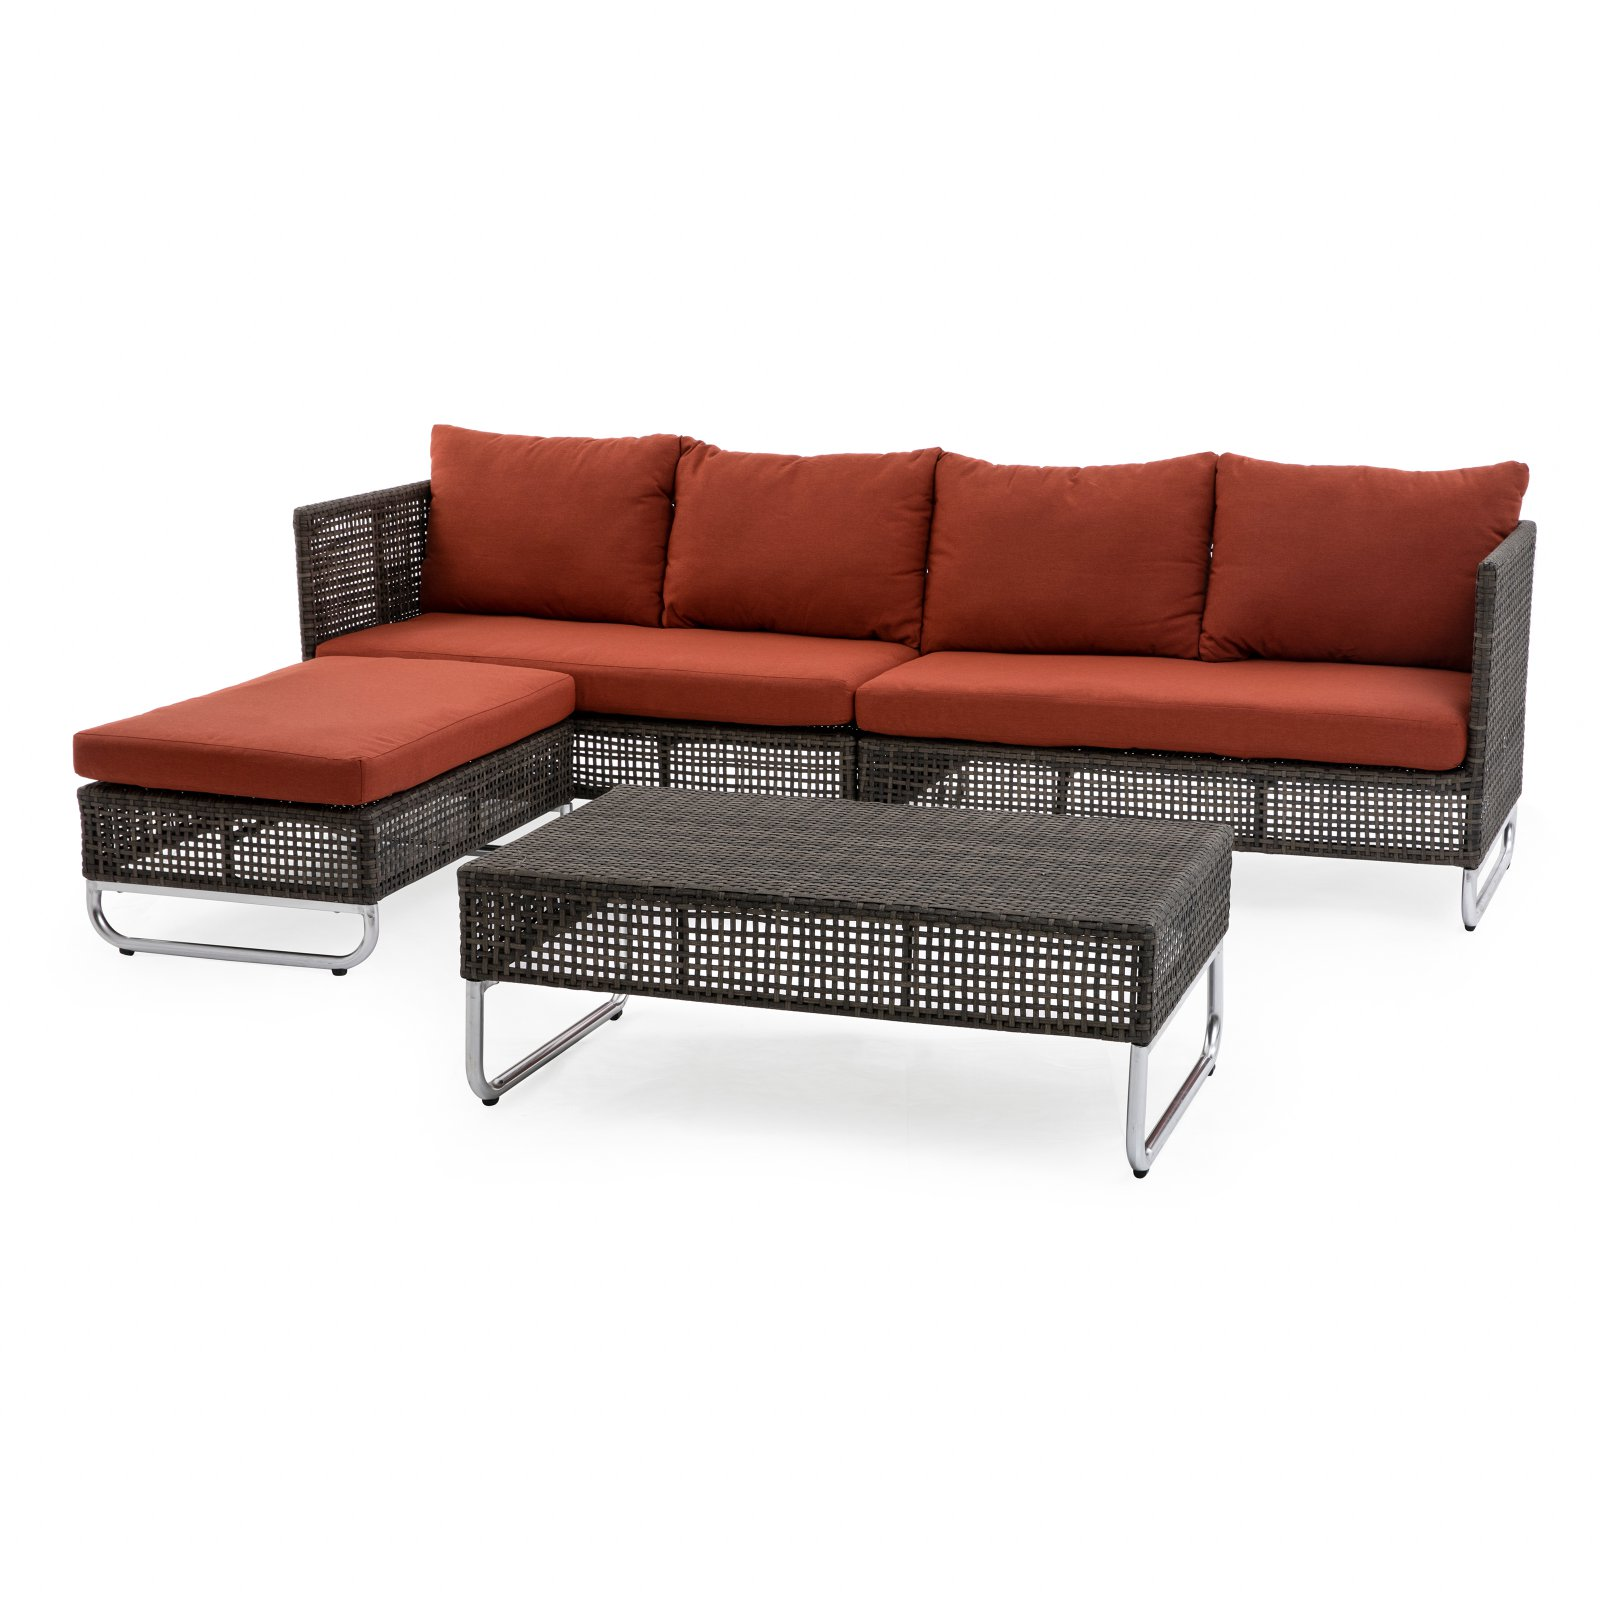 Coral Coast Maryana All Weather Wicker Open Weave Outdoor Sectional Set